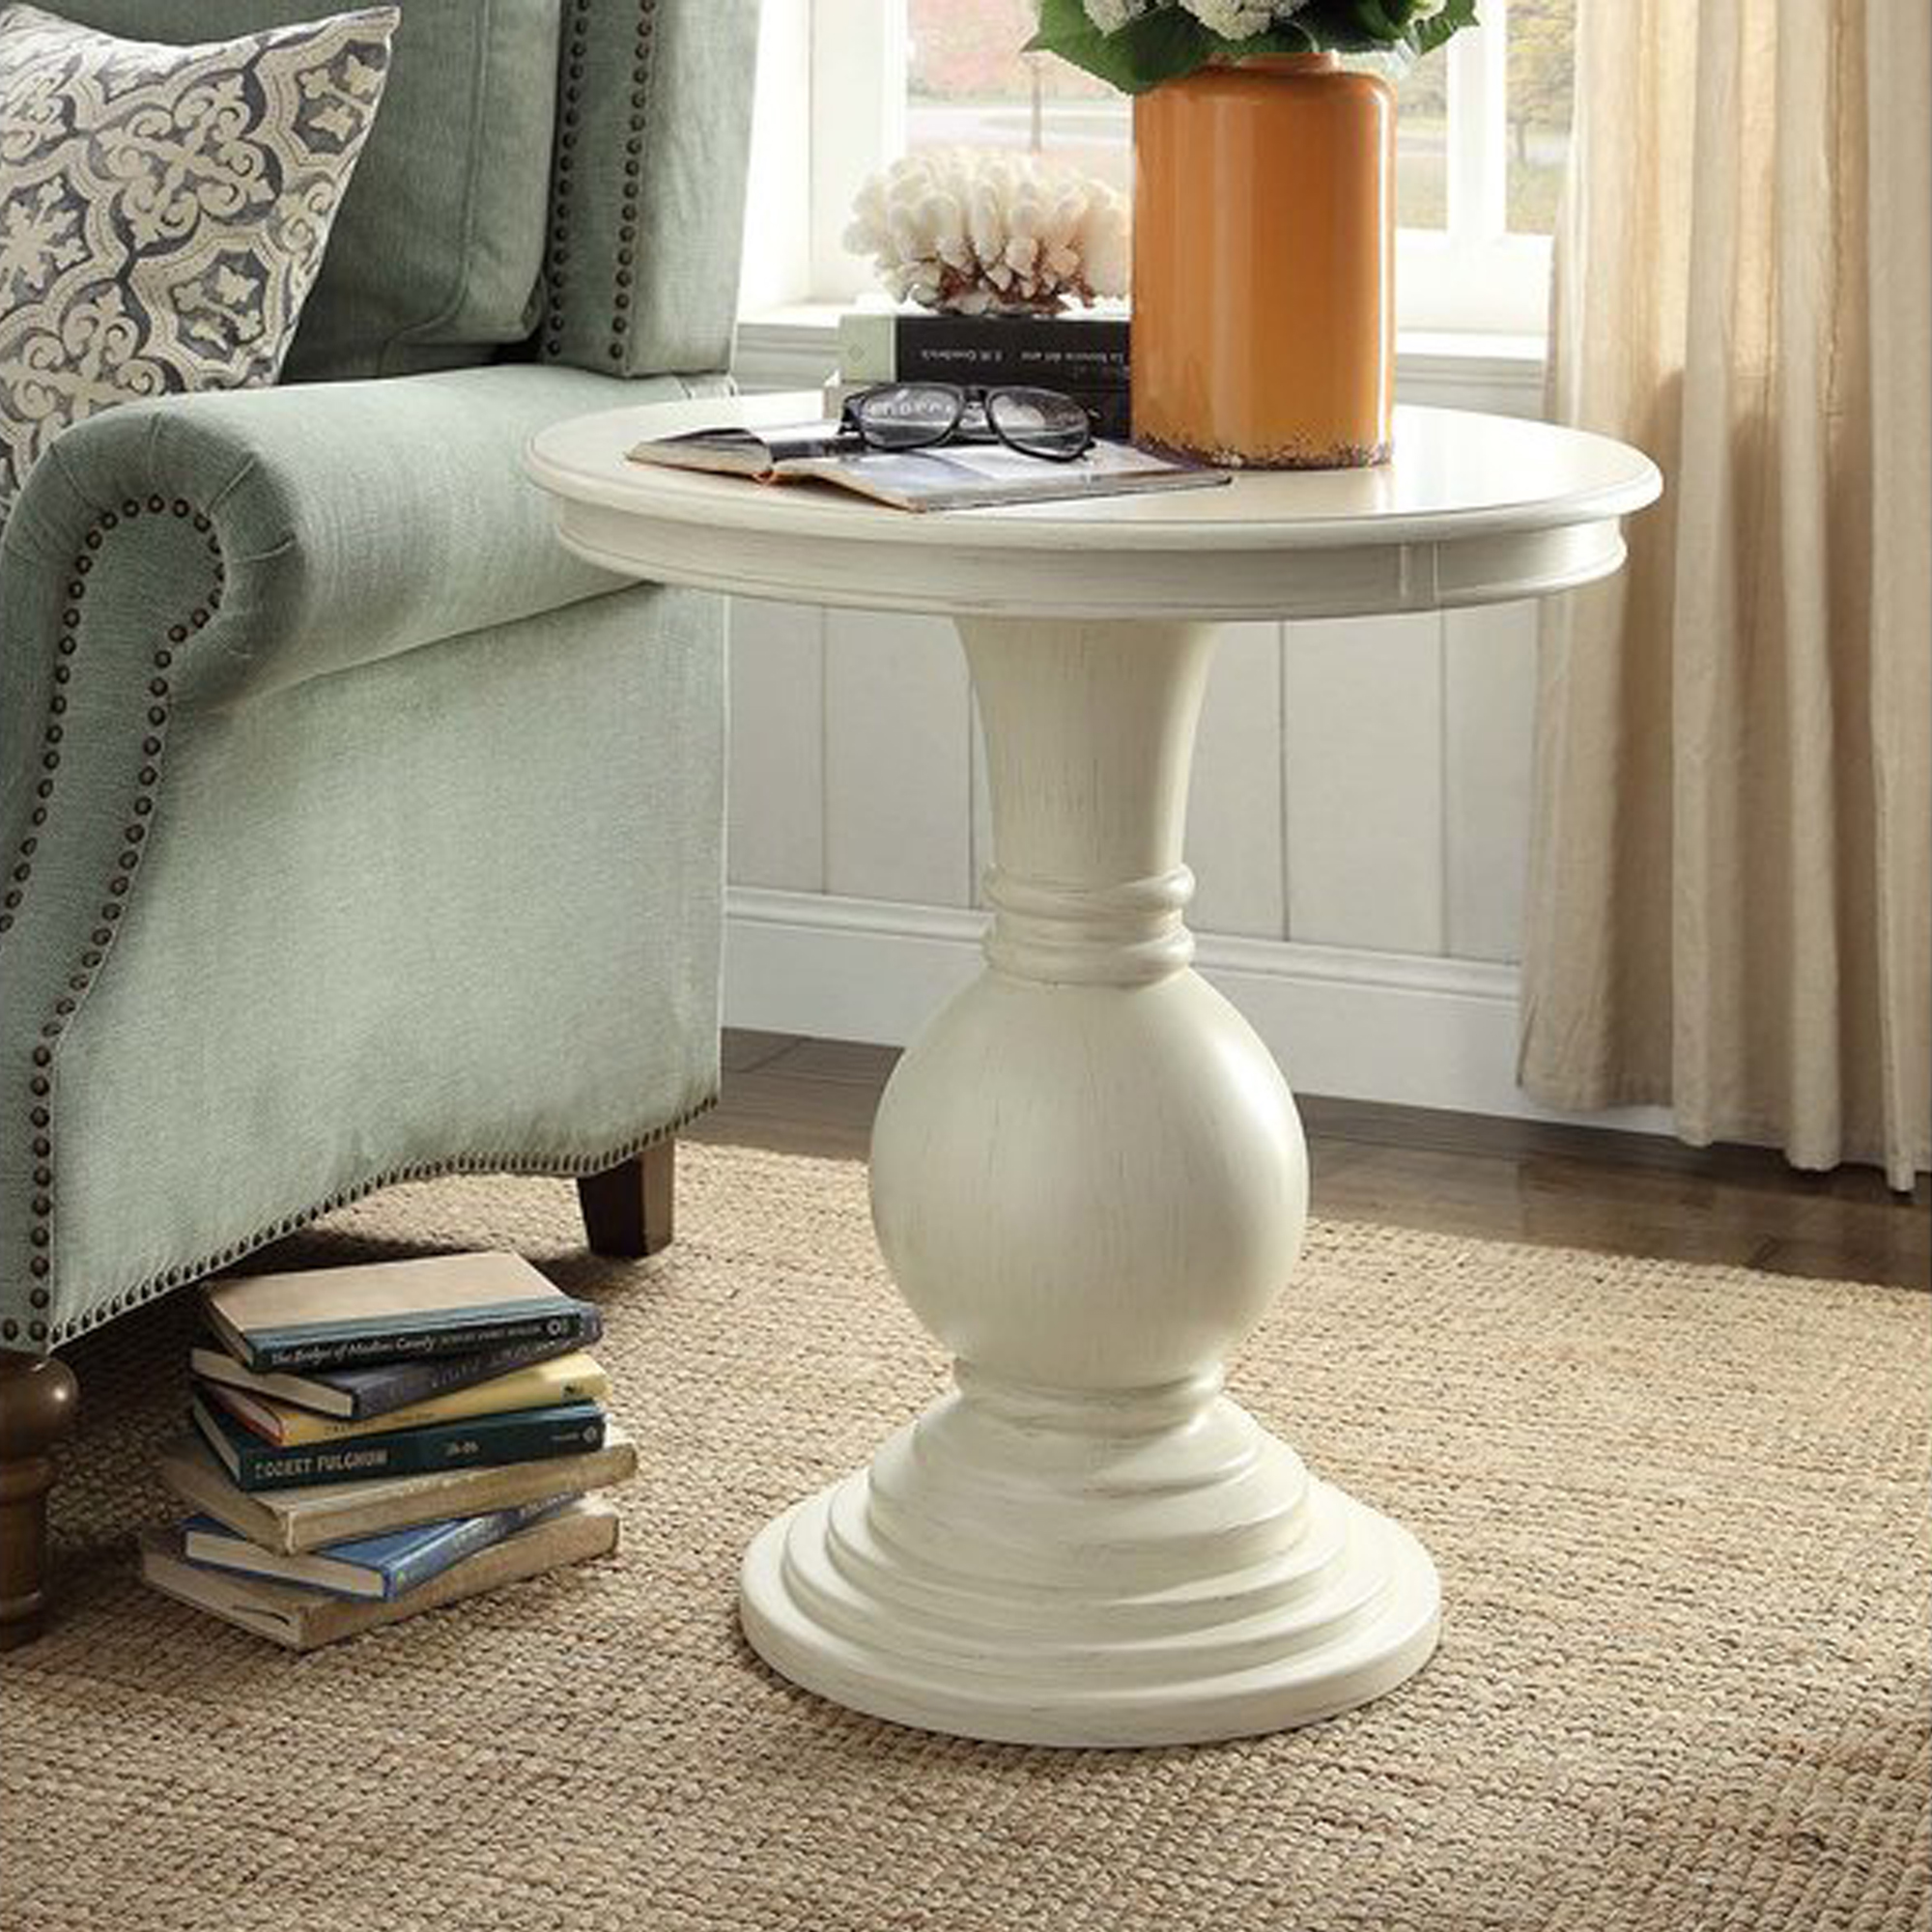 tall pedestal accent table design ideas round end tables side lamp for wrought iron small black distressed off white best accentuate your living dimmable chairs toronto all marble